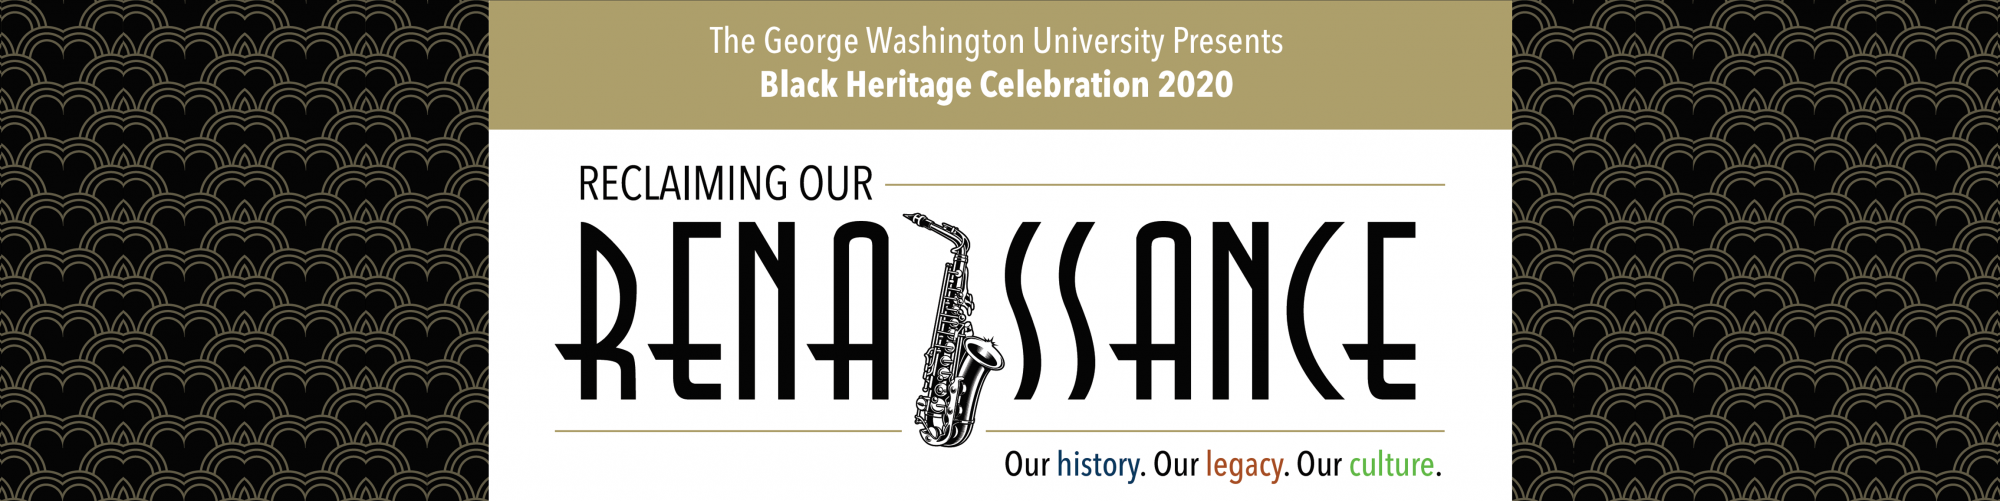 BHC 2020. Reclaiming our Renaissance: Our history, our legacy, our culture.